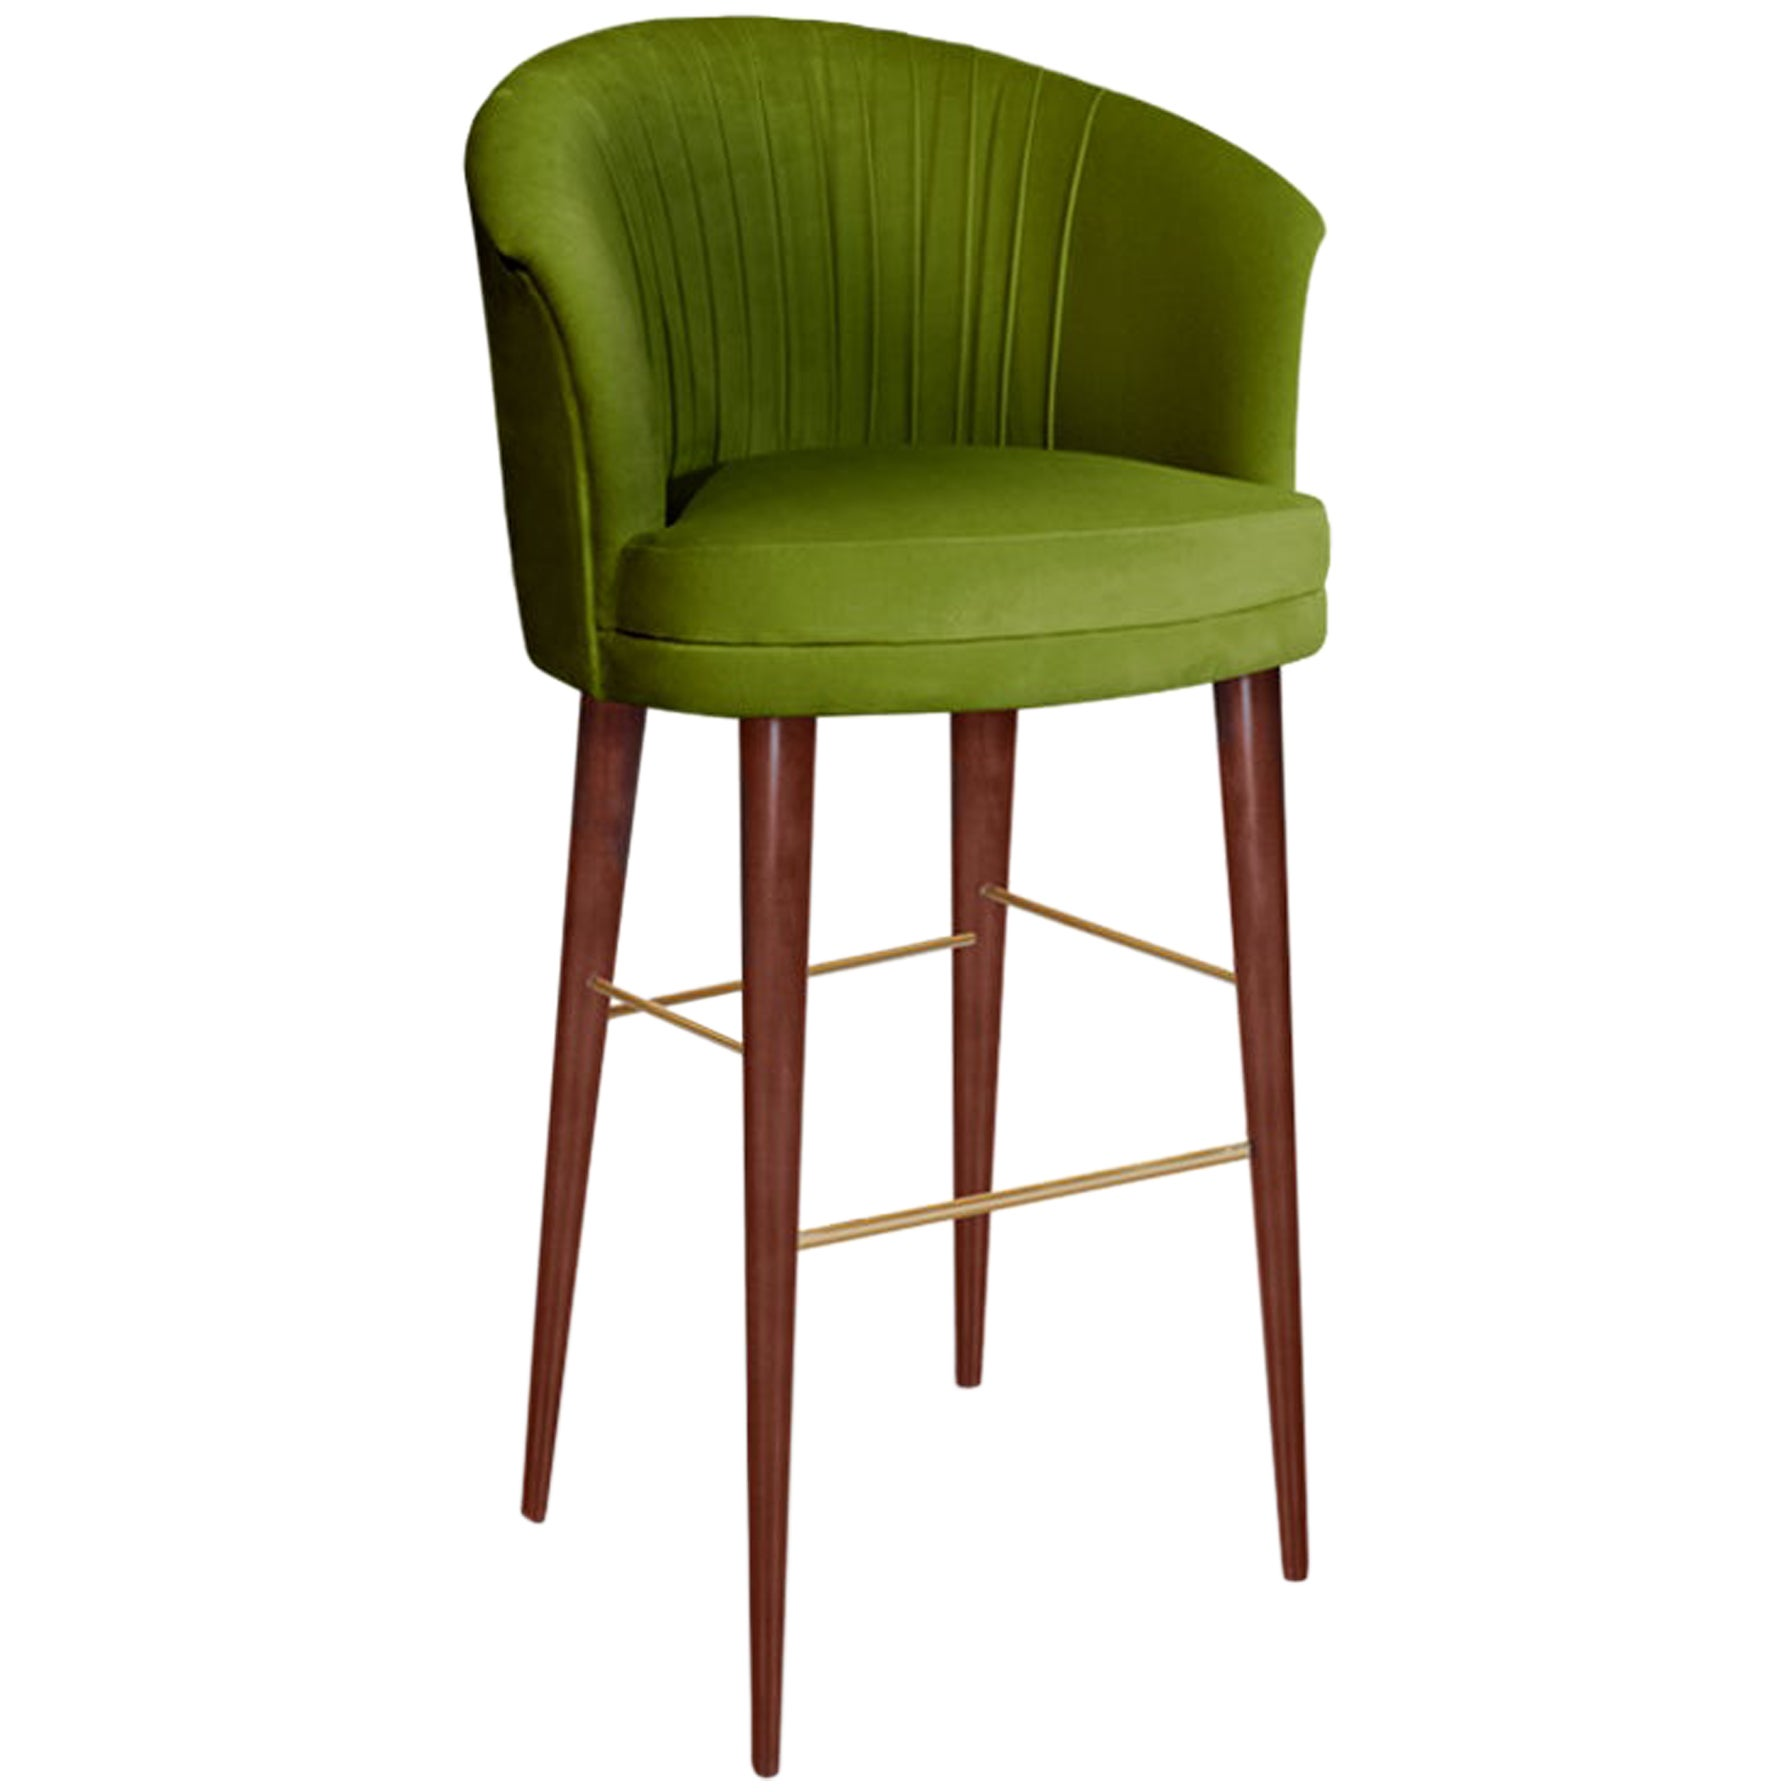 21st Century Lupino Bar Chair Cotton Velvet Walnut Wood Legs